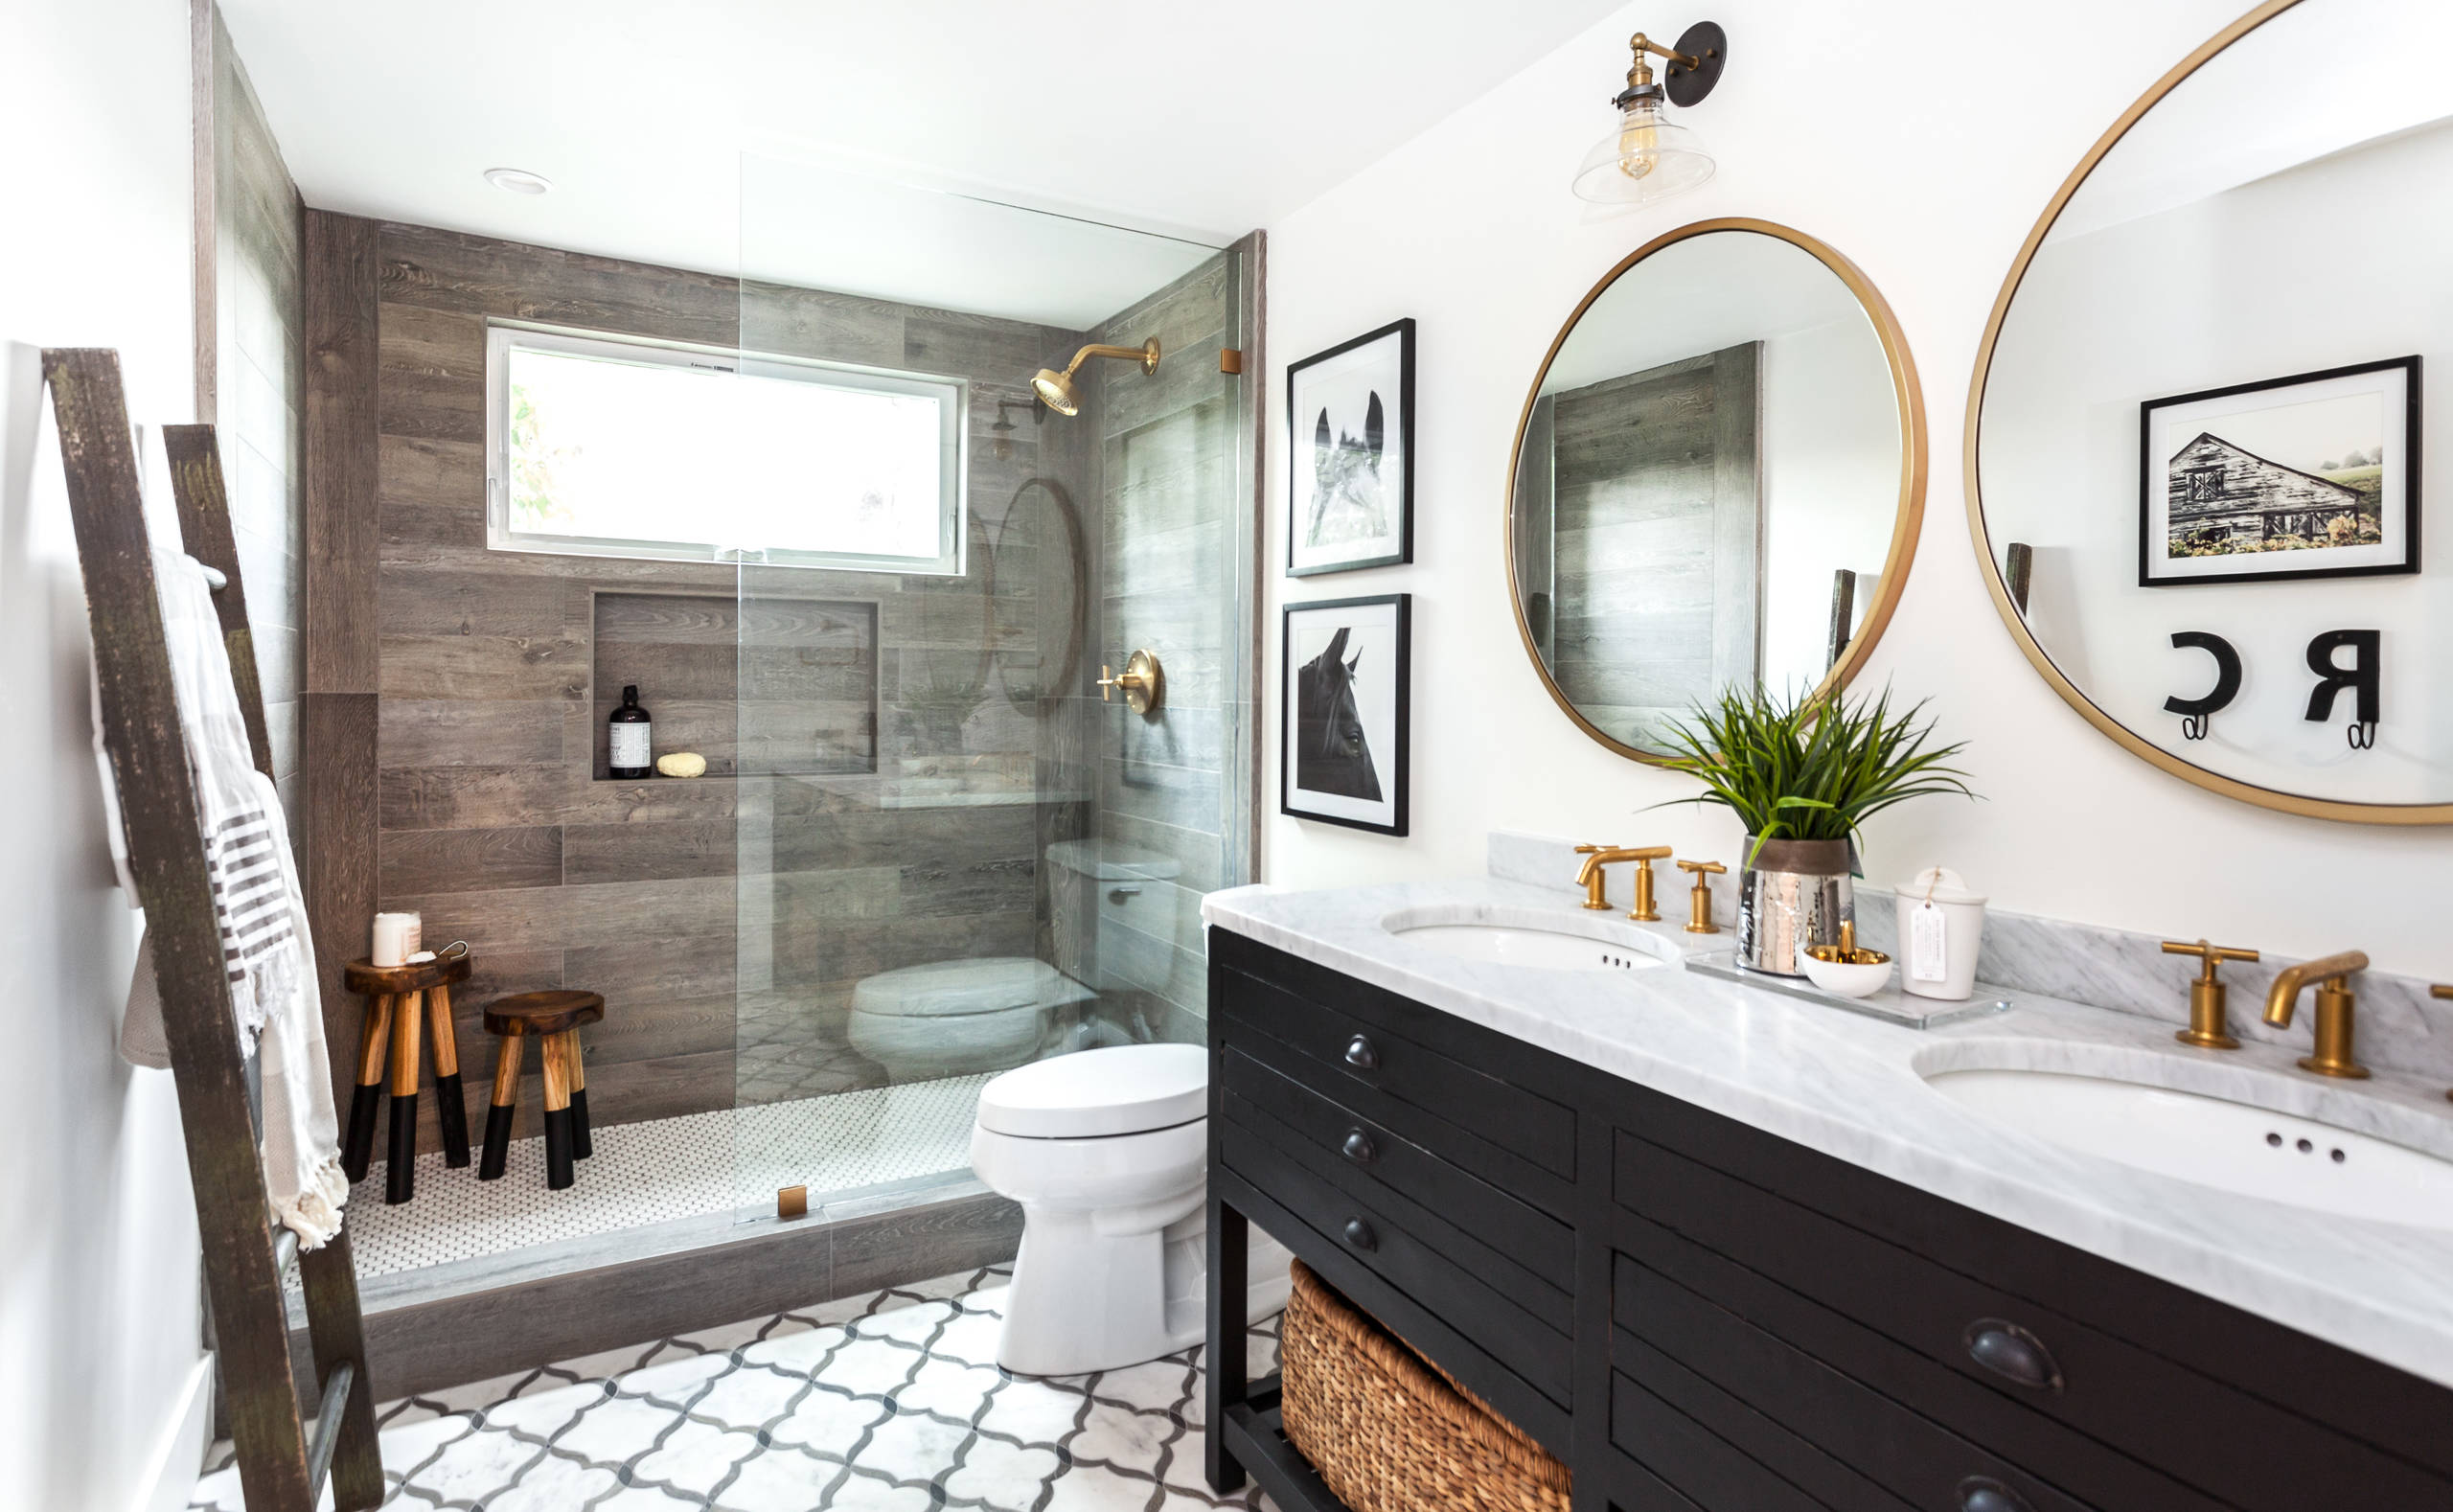 2020 Tips and Tricks for Your Best Bathroom Remodel Yet   My Decorative